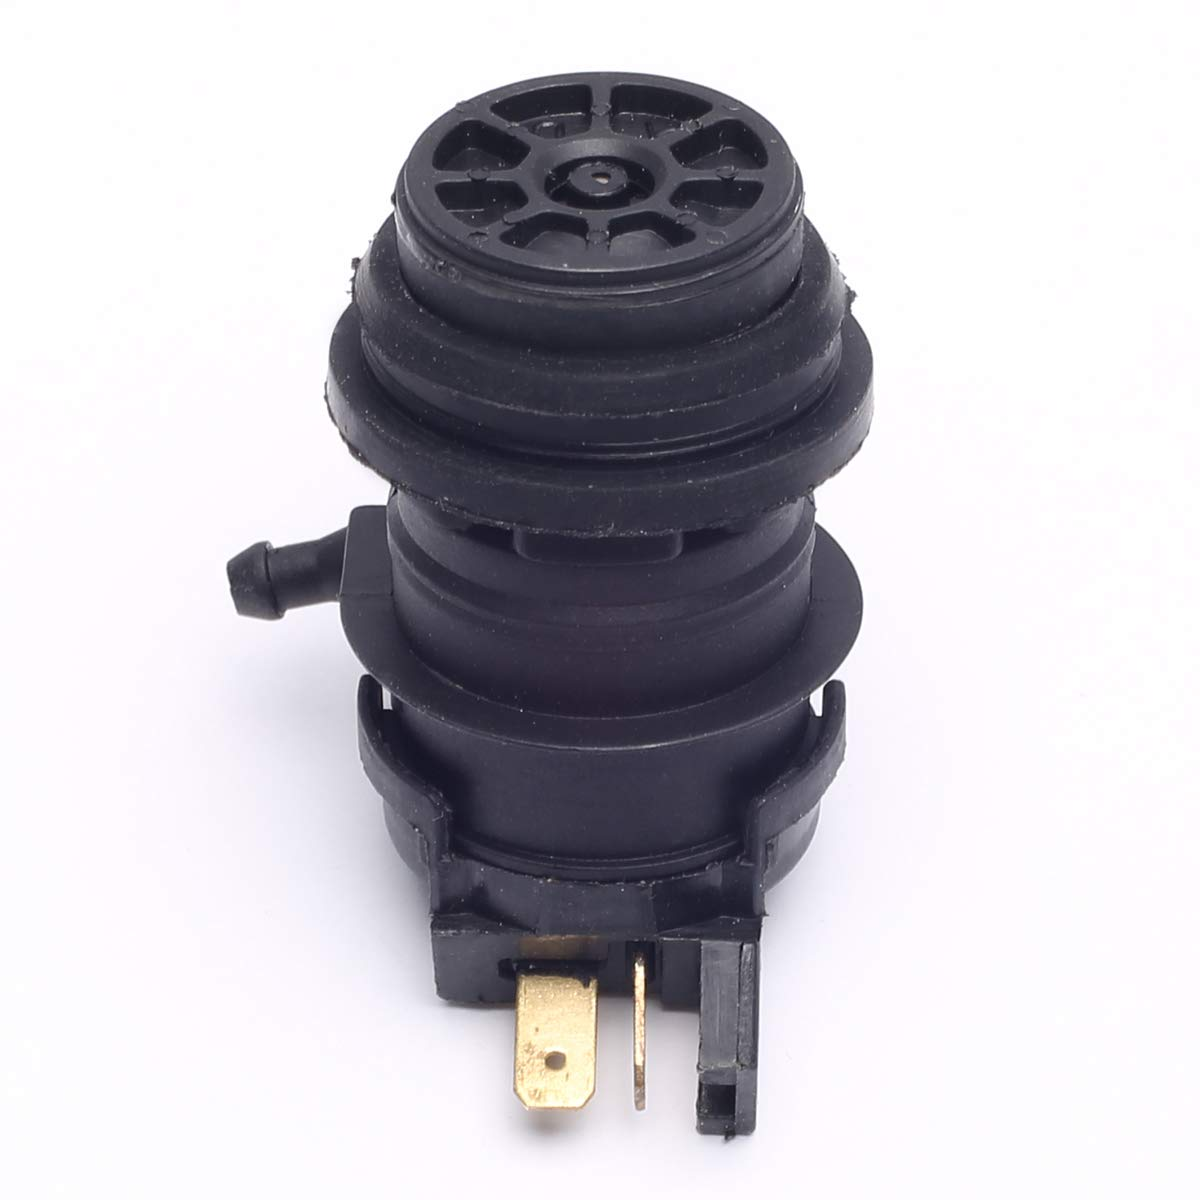 PeakCar Windshield Washer Pump Compatible with Honda Civic Ridgeline Toyota Mazda Subaru and More Replace Part# 060210-4990, 76806-SJC-A01 06021-5130, 89521007001